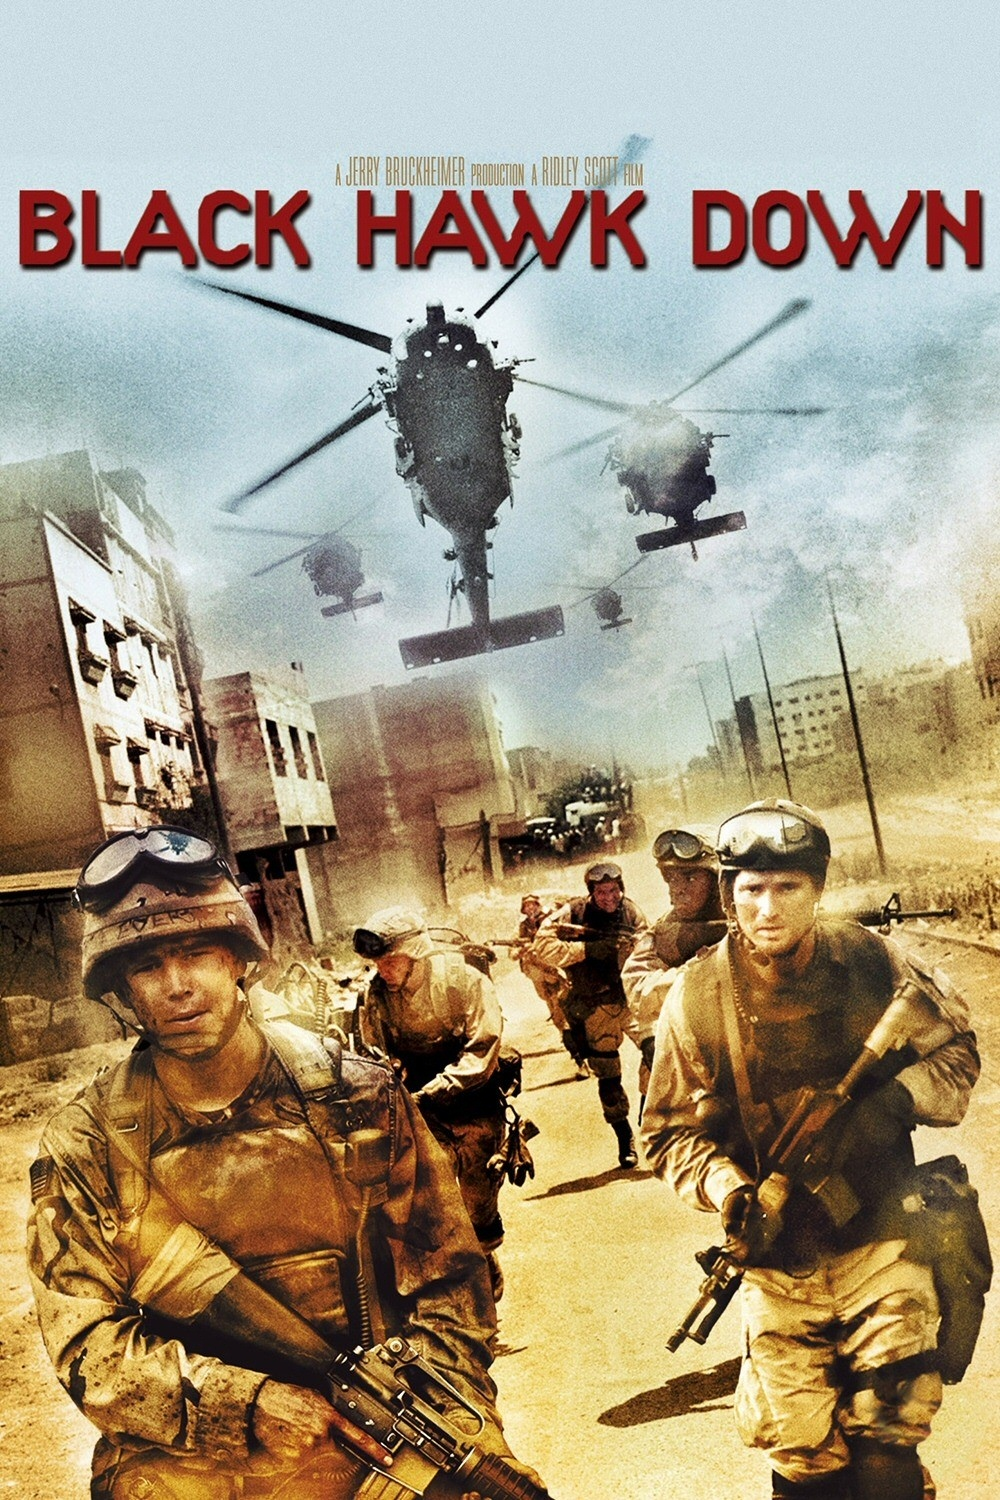 Black Hawk Down - Porn Website Name-6663